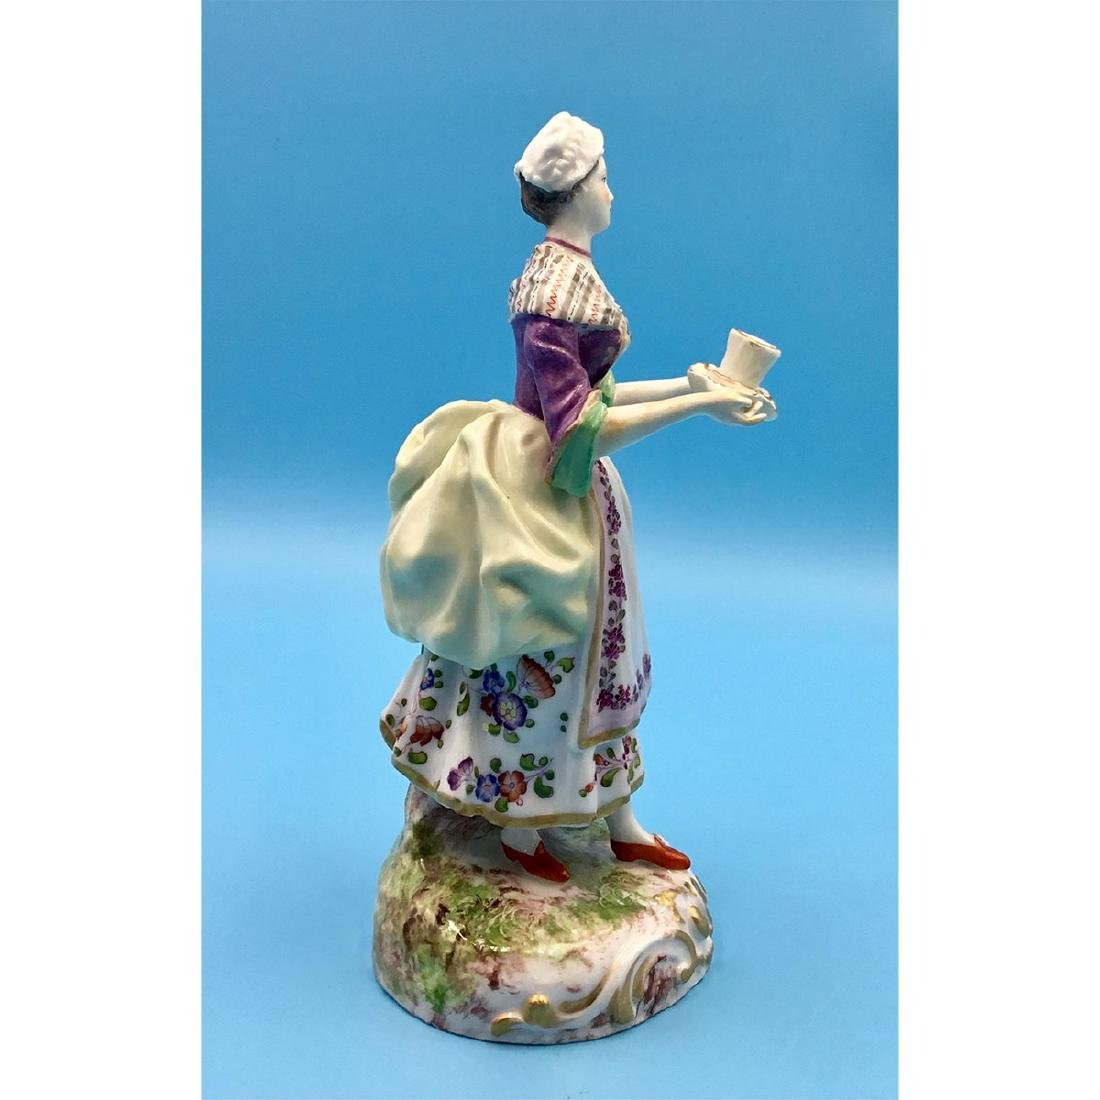 ACHILLE BLOCH FRENCH PORCELAIN FIGURINE - 4